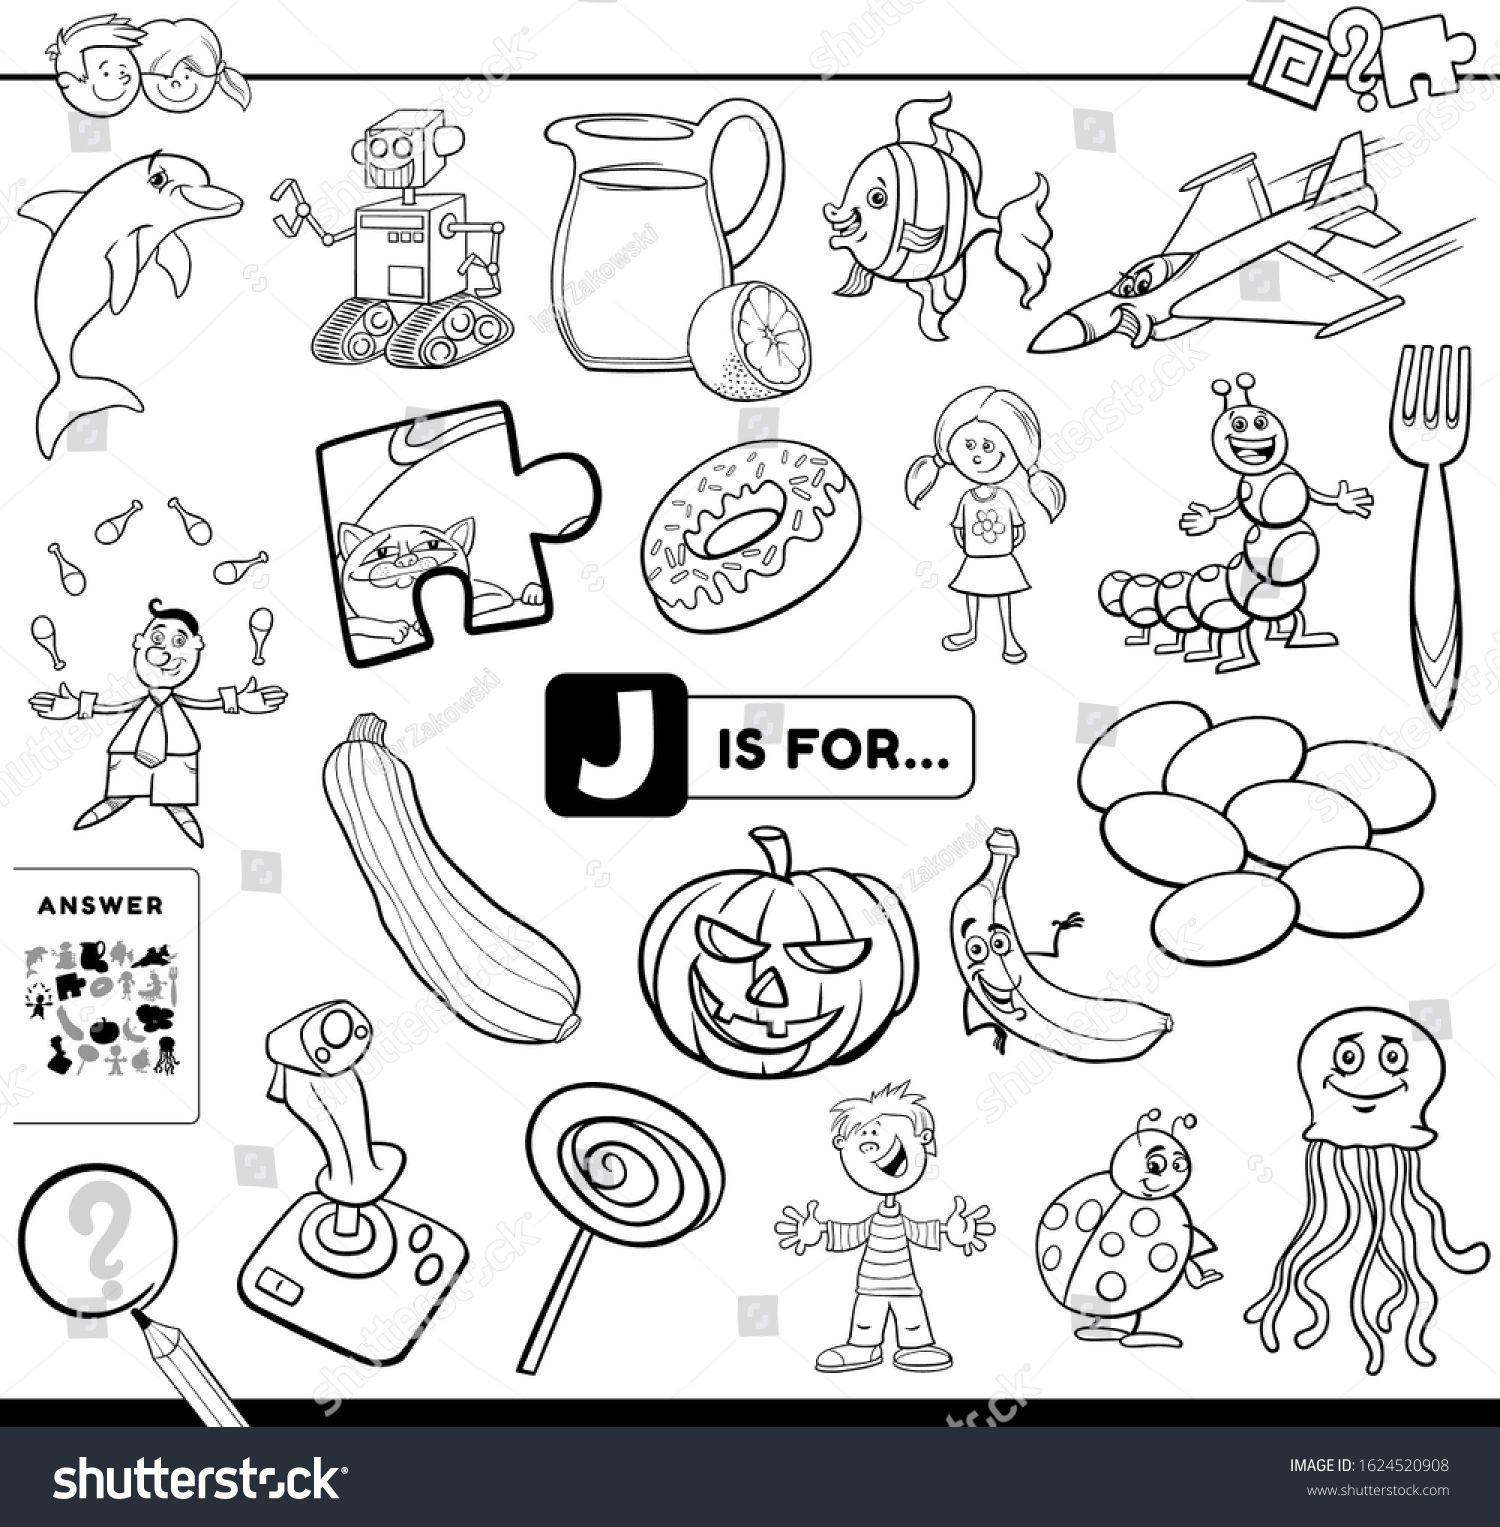 Black And White Cartoon Illustration Of Finding Picture